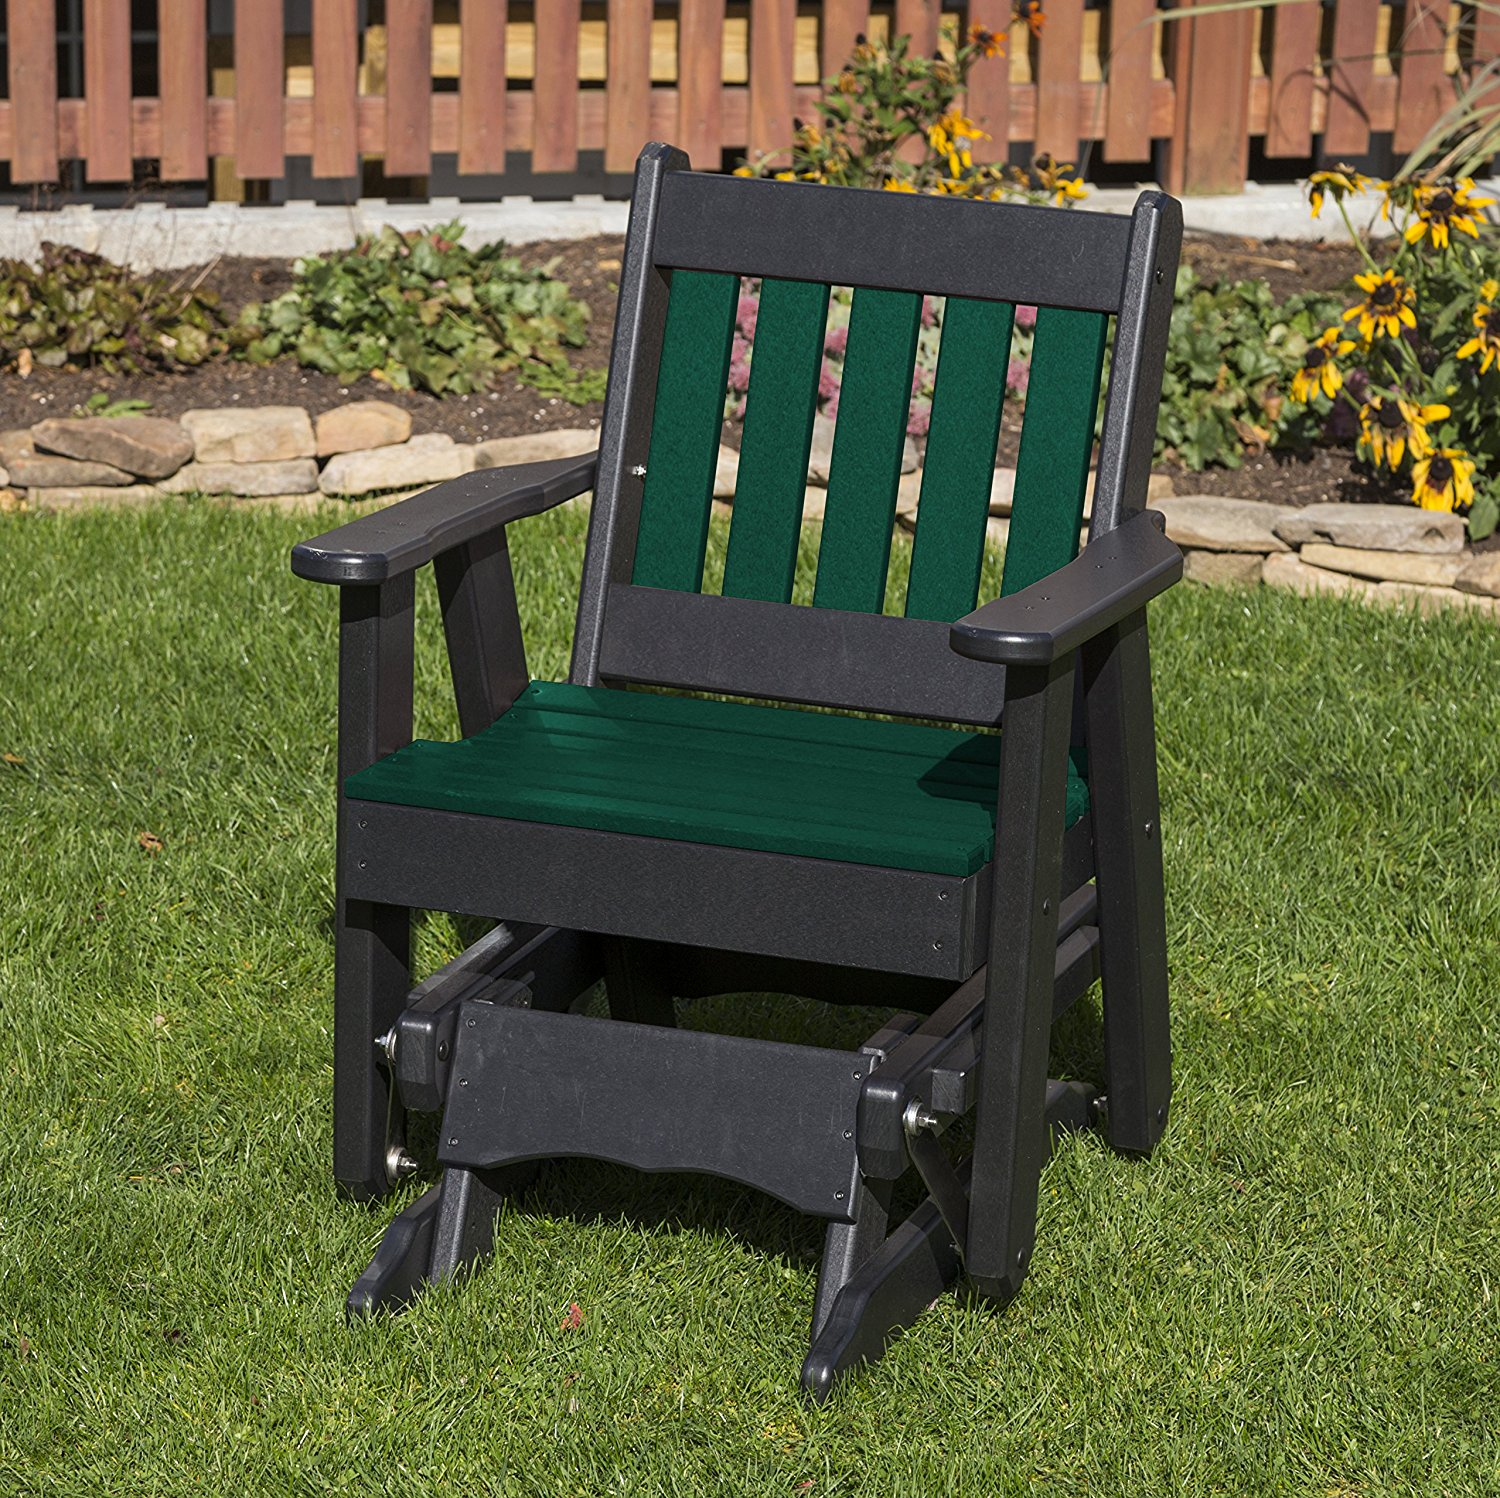 Outdoor Patio Garden Lawn Exterior Turf Green Finish Poly Lumber Mission 2 Ft Glider Everlasting - Amish Crafted